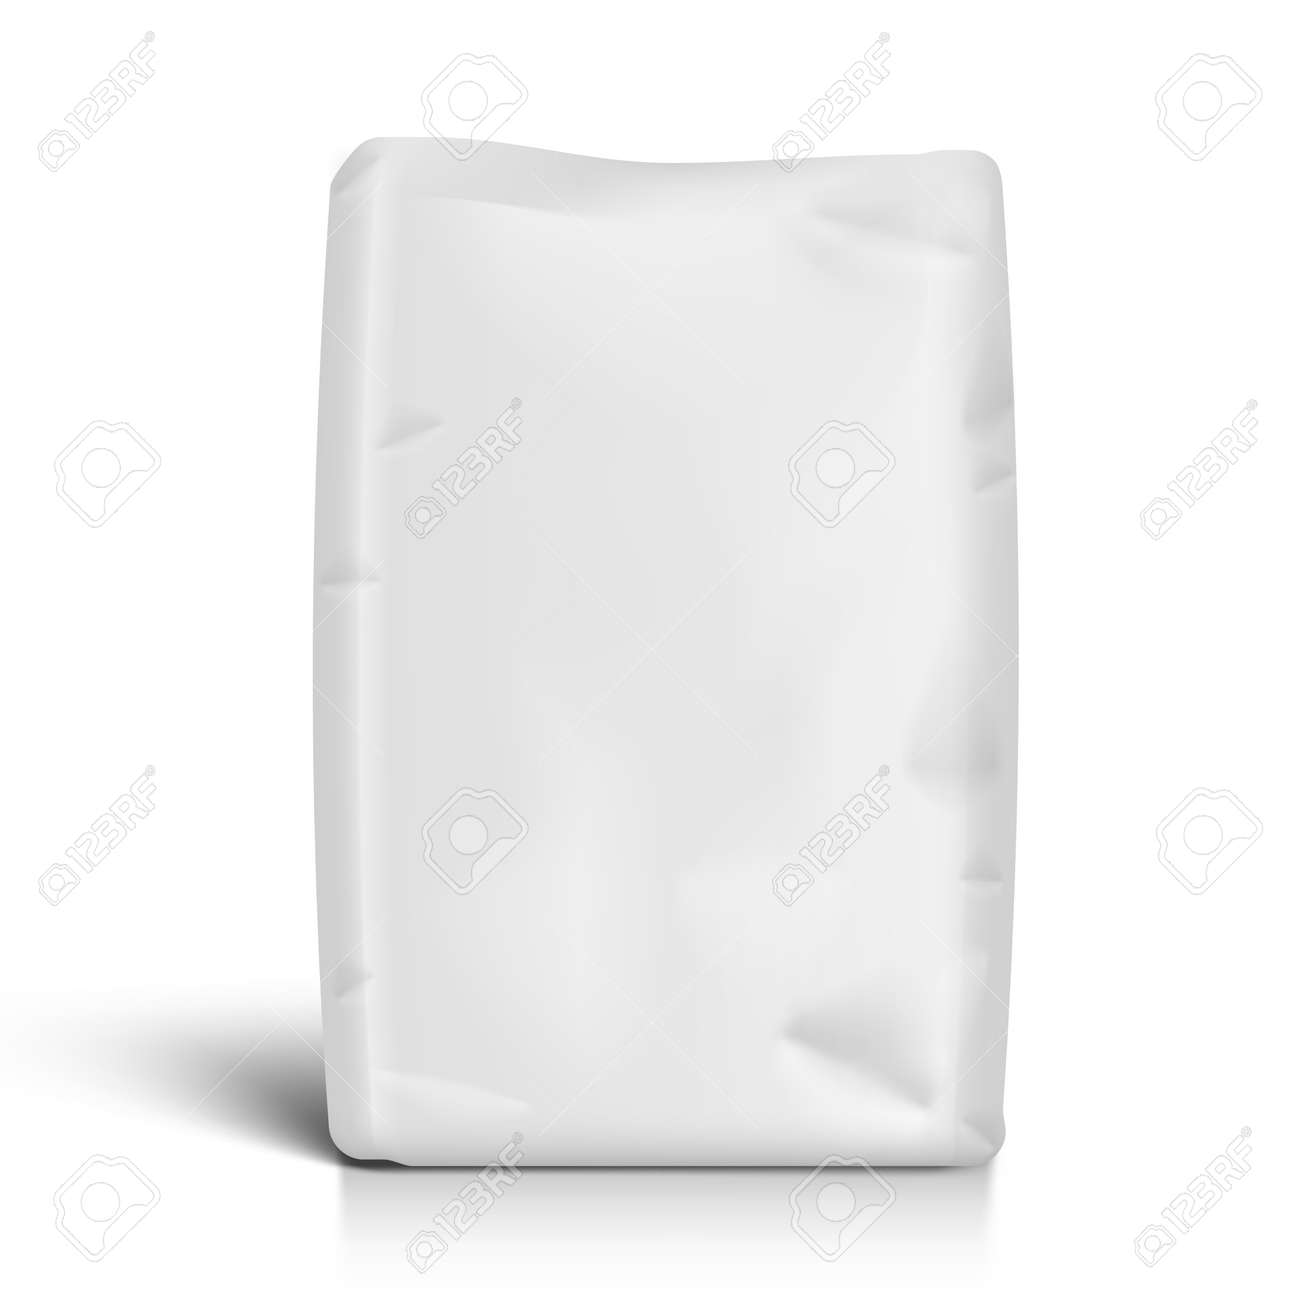 White Bag For Flour Or Other Loose Products - 166935510